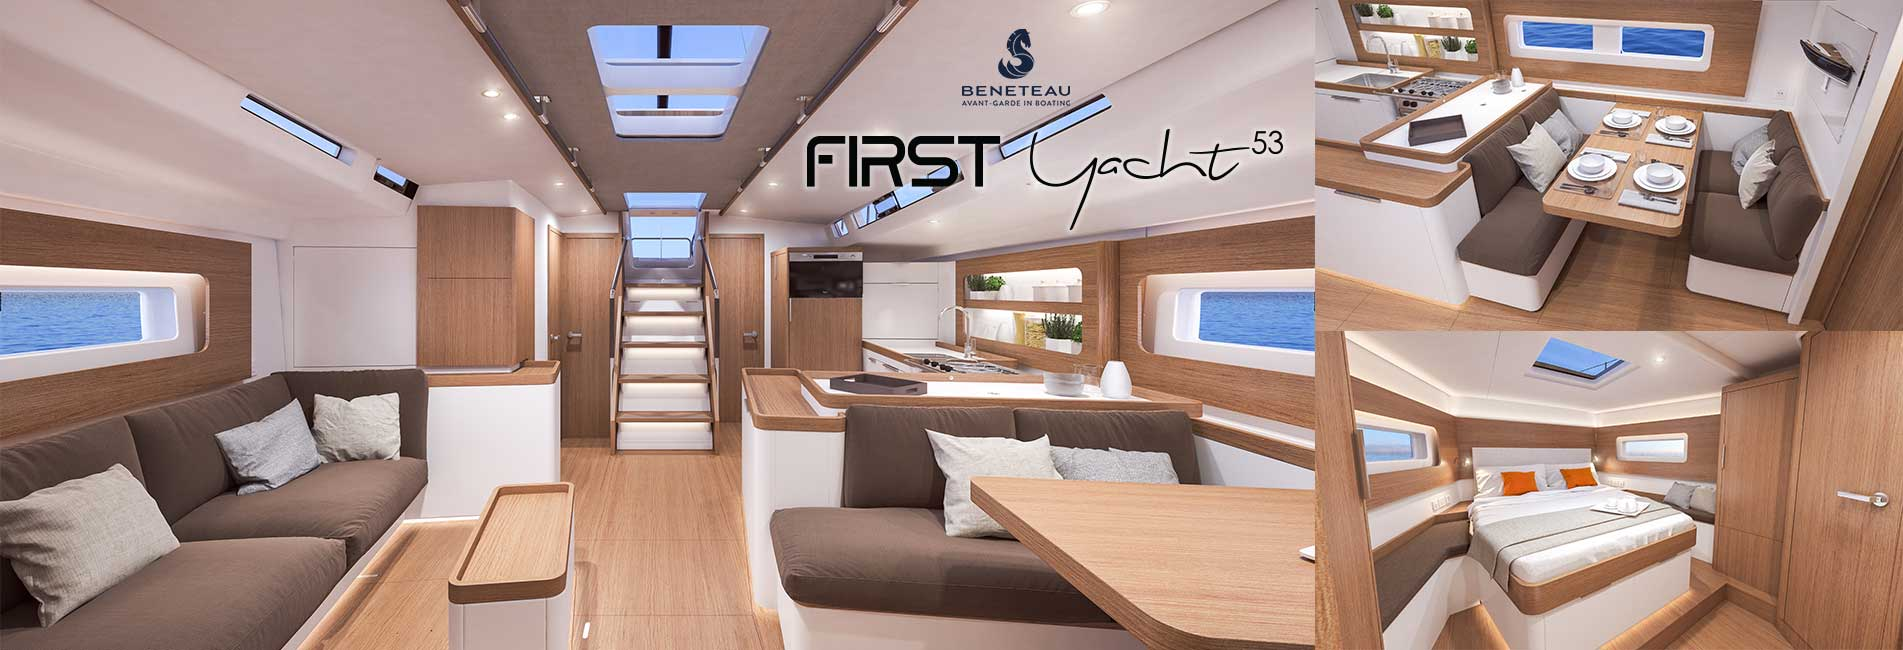 Beneteau First Yacht 53 Interior